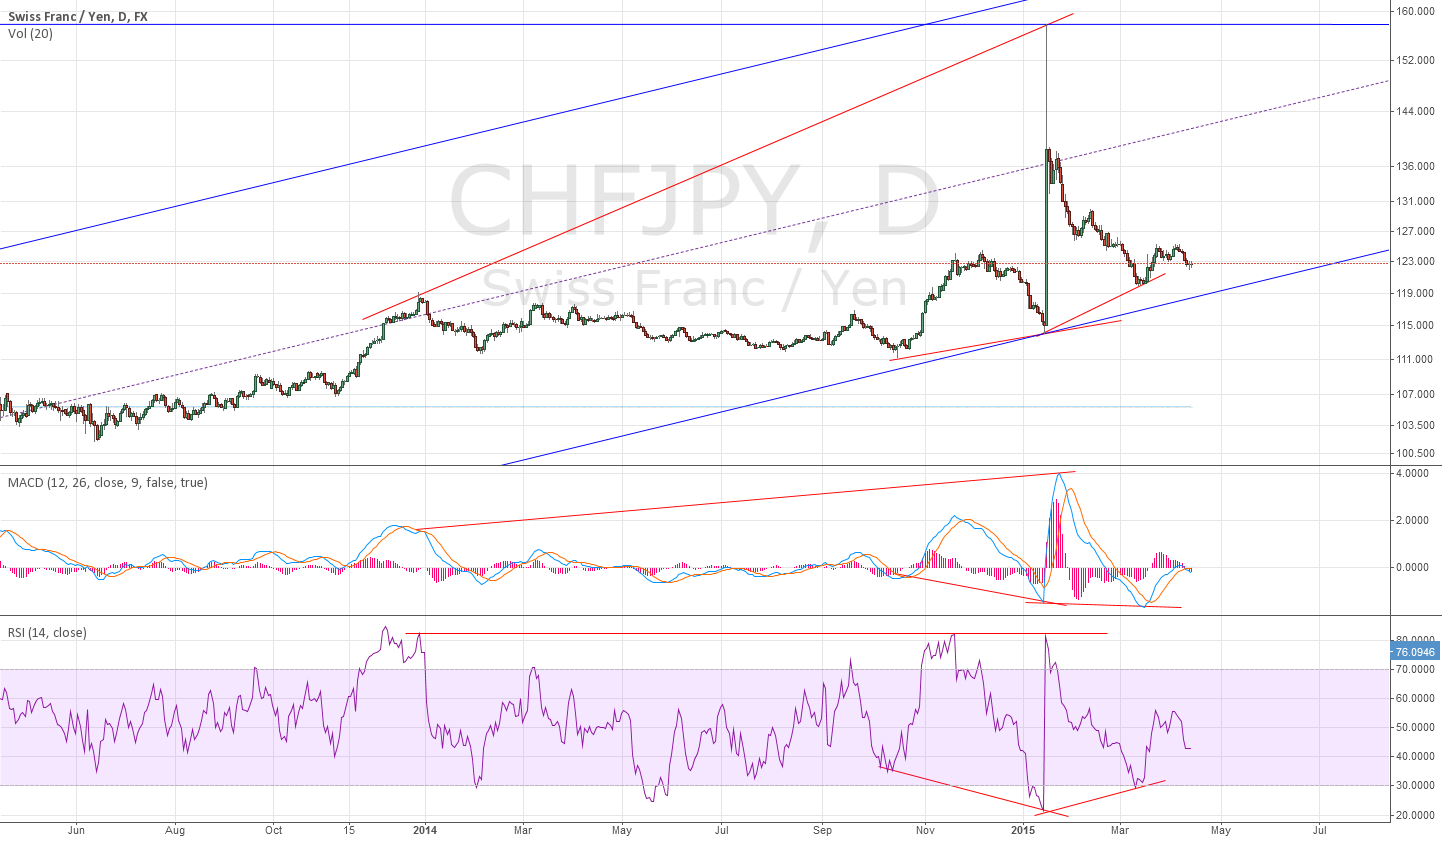 interesting daily for CHFJPY divergence